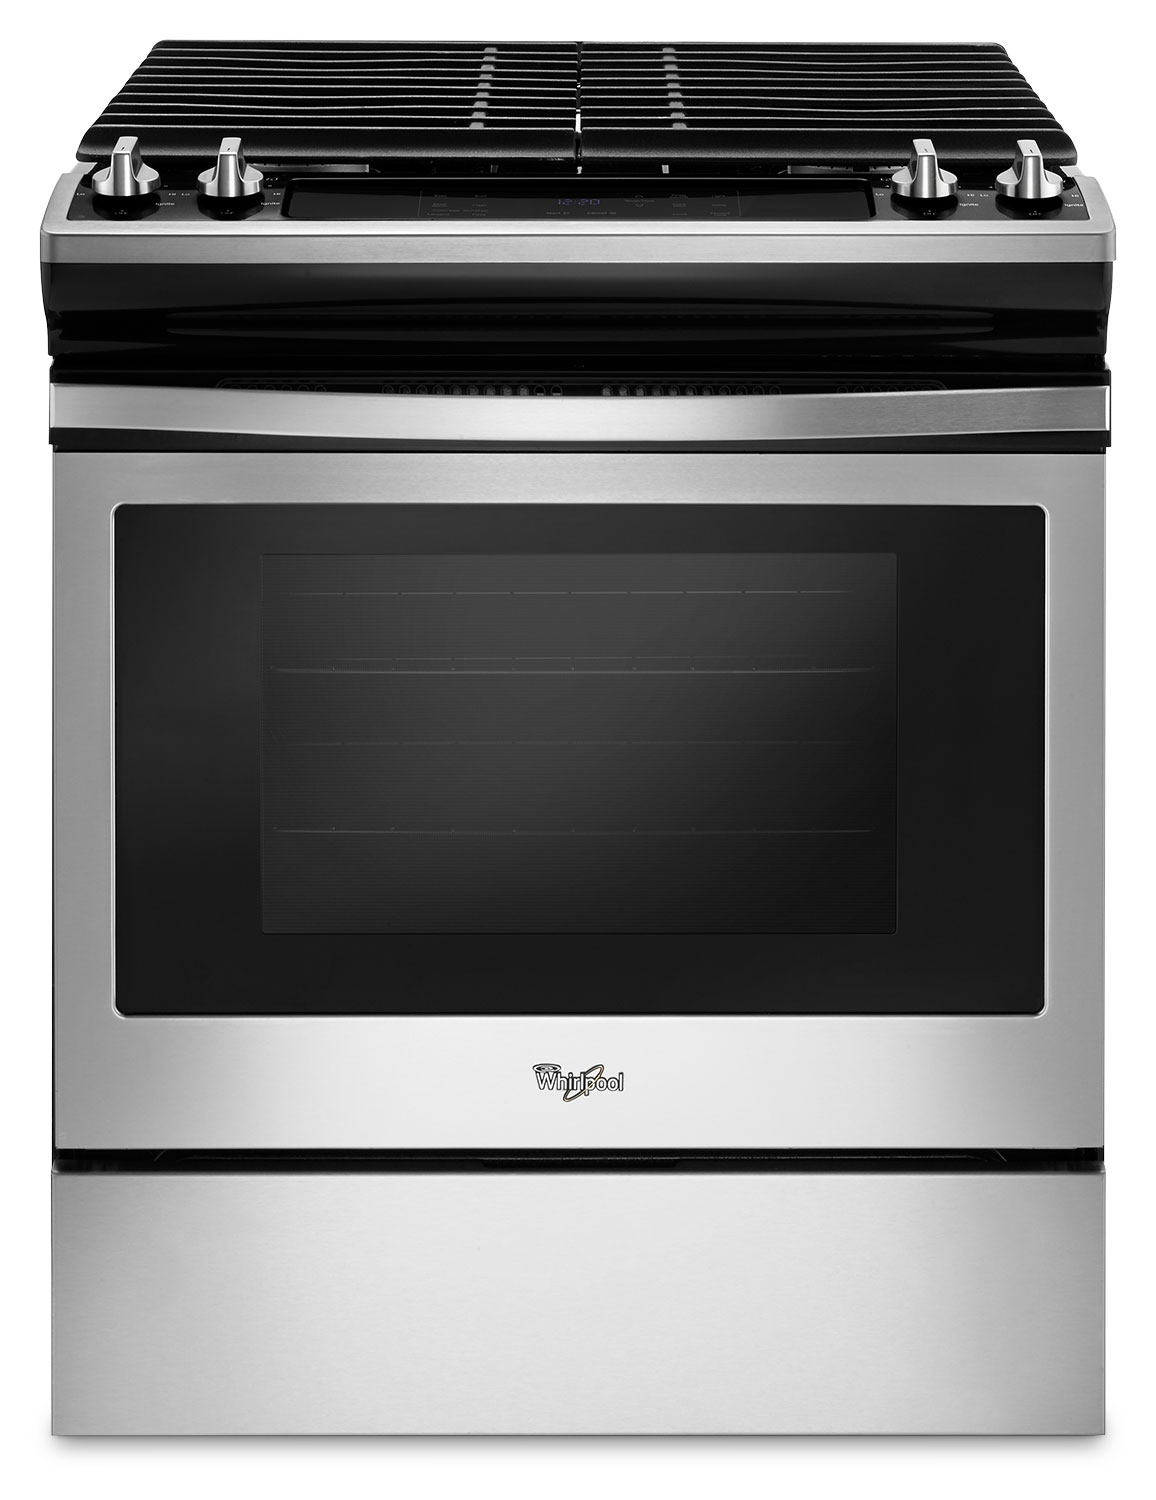 Whirlpool Stainless Steel Slidein Gas Range (48 Cu Ft. Kitchen Design Paint. Design Your Own Kitchen. Tuscan Style Kitchen Designs. Kitchen Designing Software Free Download. Kitchen Grease Trap Design. Galley Kitchen Design. New Designs For Kitchens. Kitchen Design Pictures And Ideas